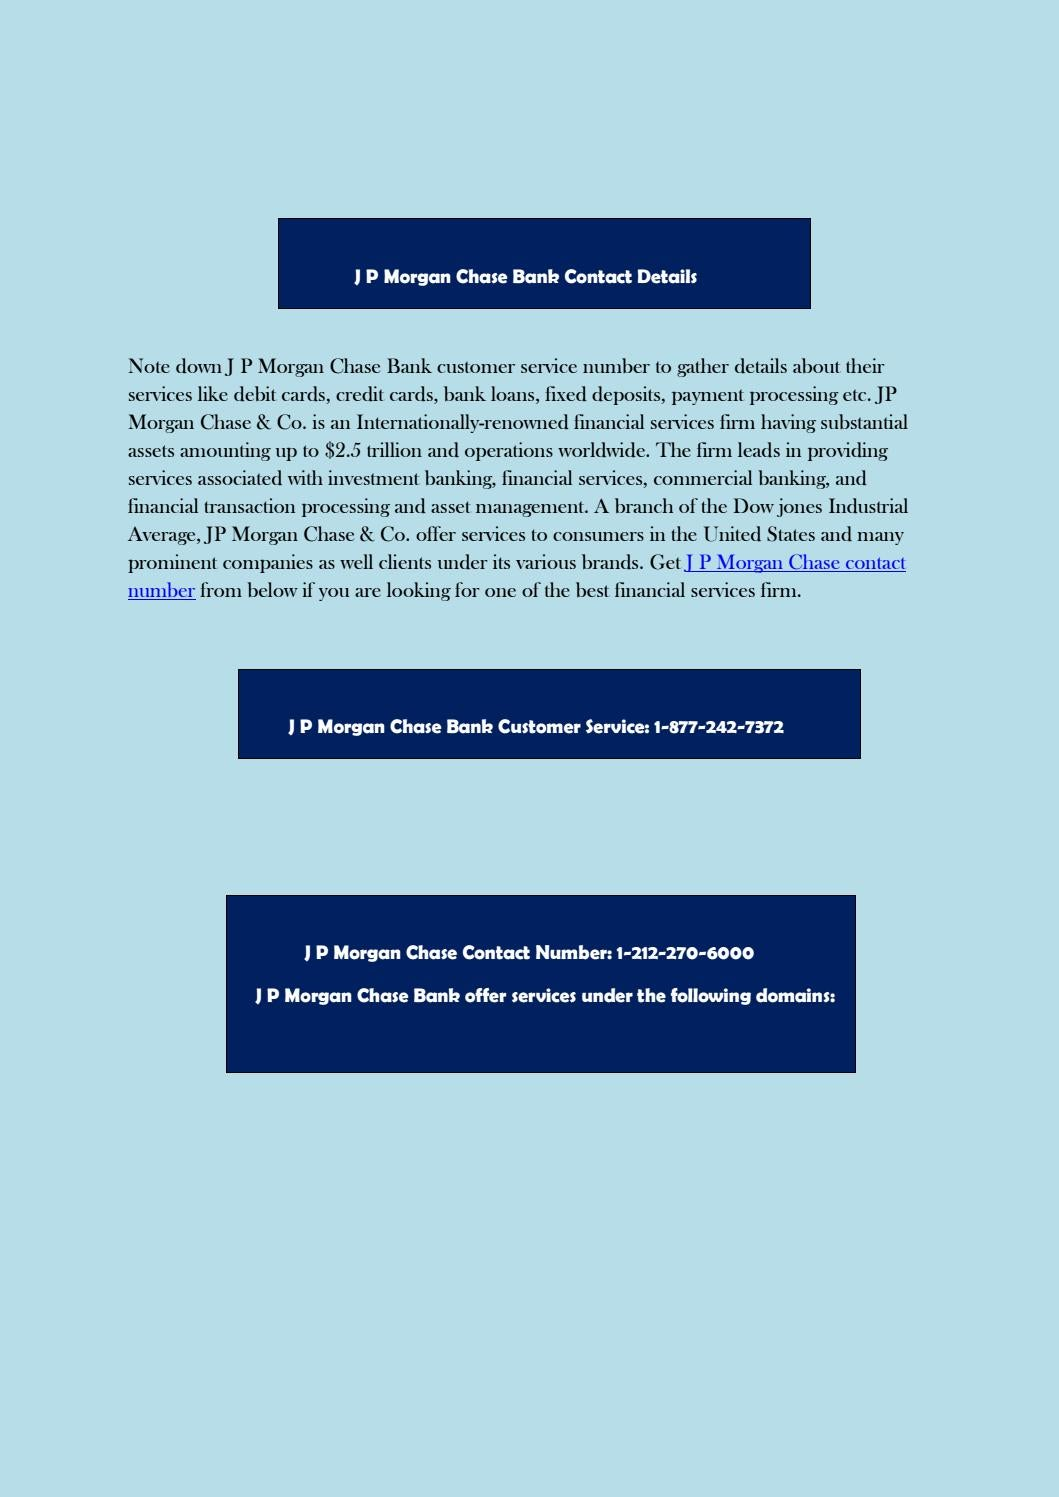 J P Morgan Chase Bank Contact Details by customernumber - issuu